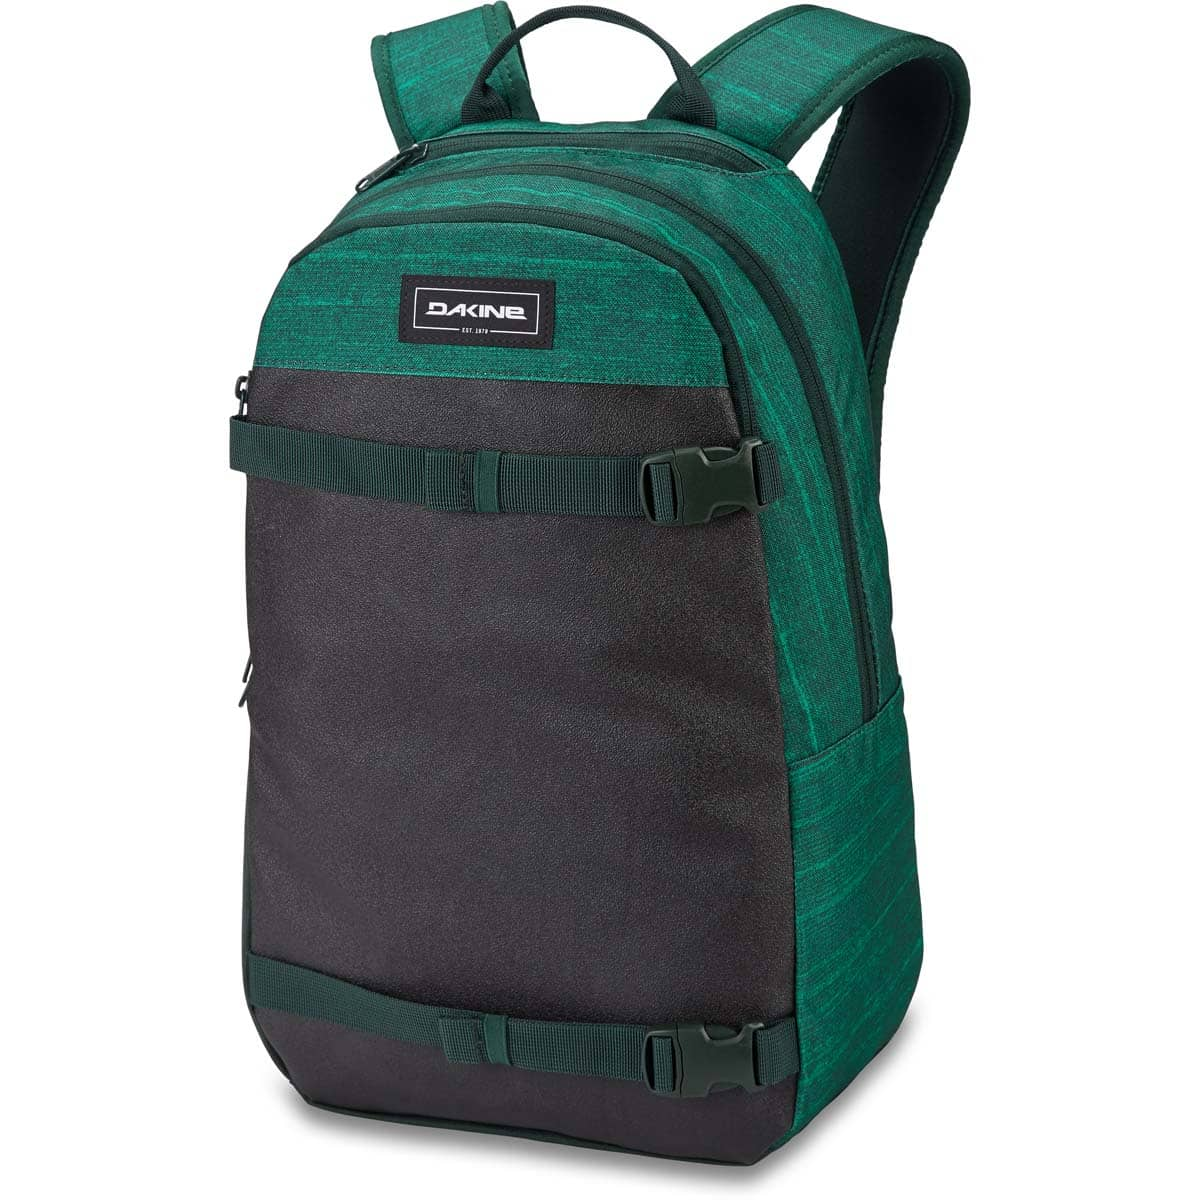 2bf706591fb4c Dakine URBN Mission Pack 22L Rucksack mit iPad Laptop Fach Greenlake ...